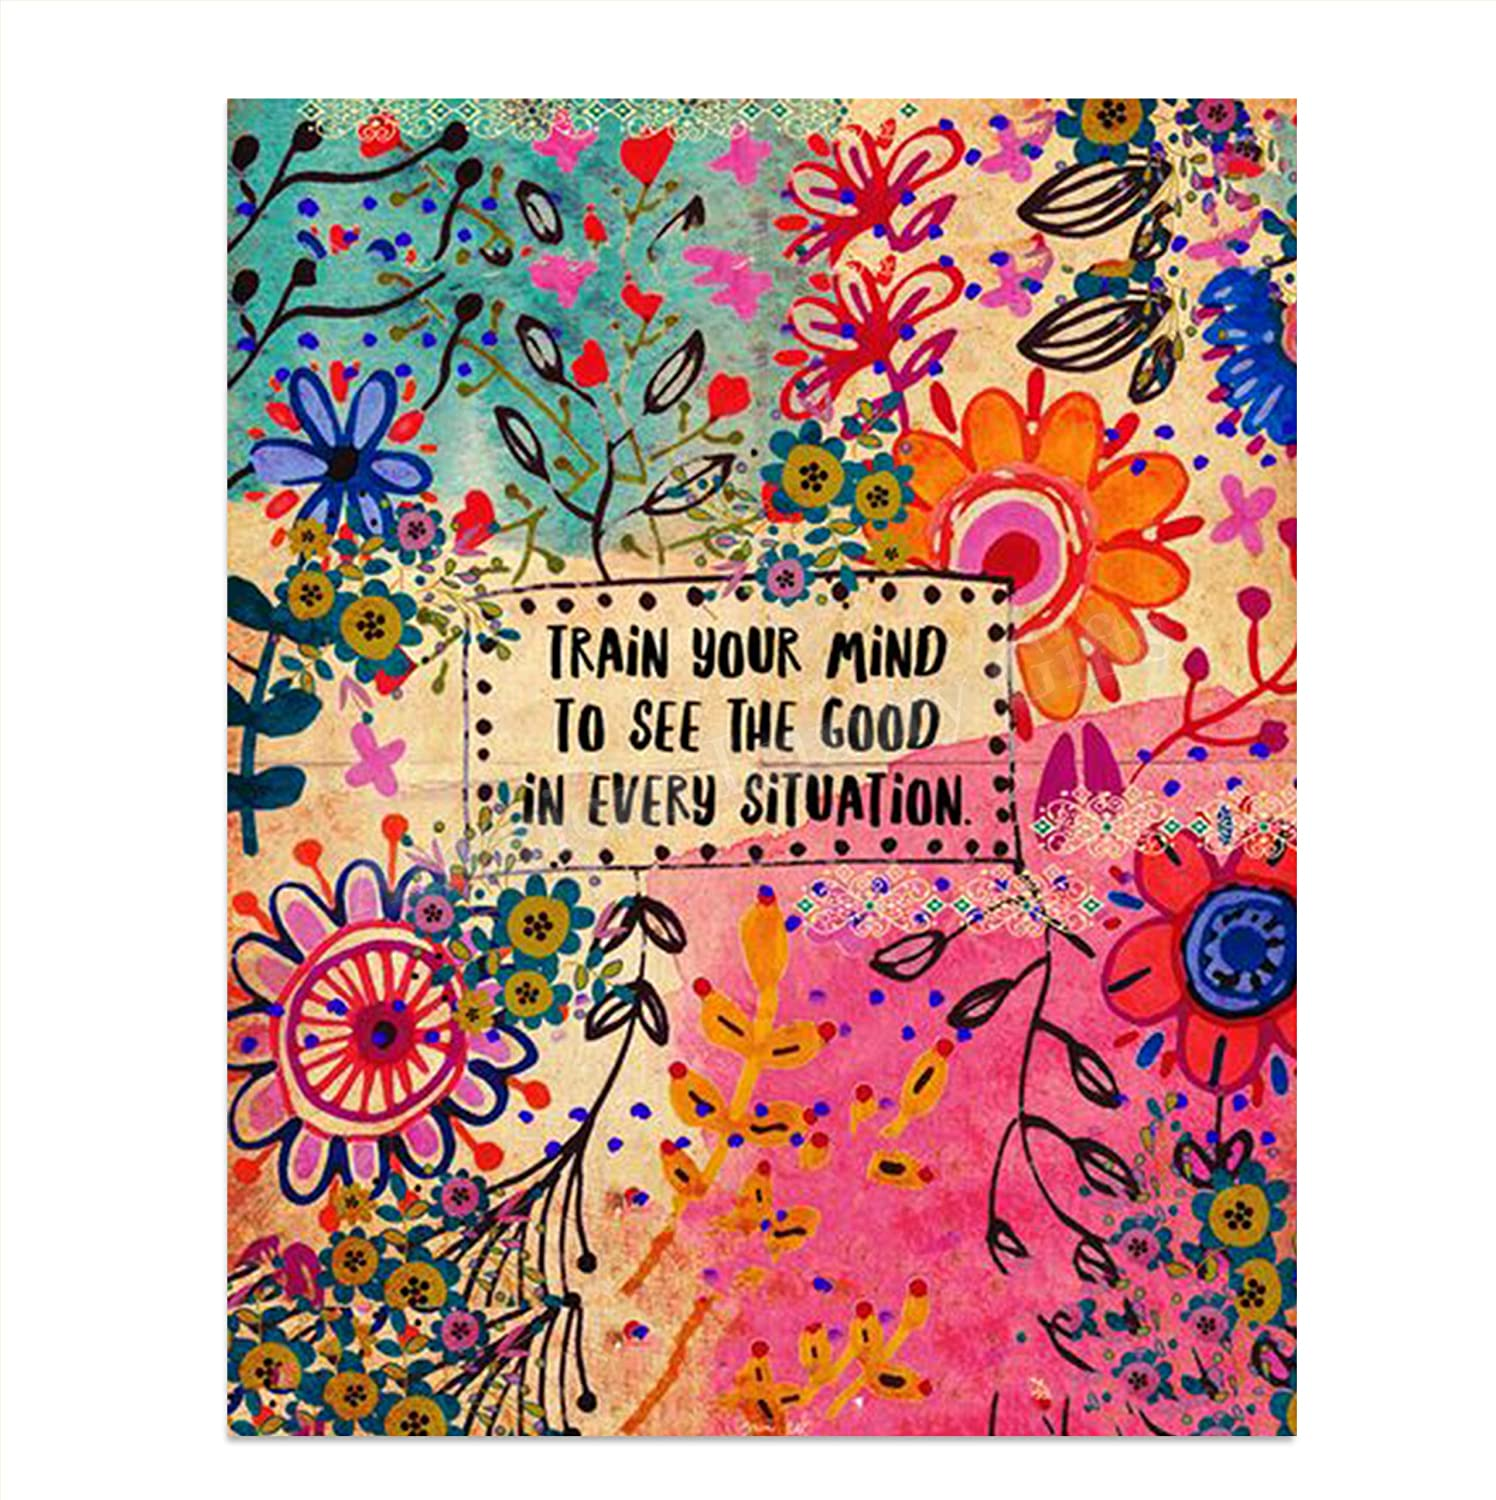 """""""Train Your Mind To See The Good""""- 8 x 10""""Inspirational Wall Print Sign on Floral Hippie Pattern- Ready to Frame. Retro Motivational Wall Art. Home-Office Décor. Great for Students-Classroom-Dorm."""